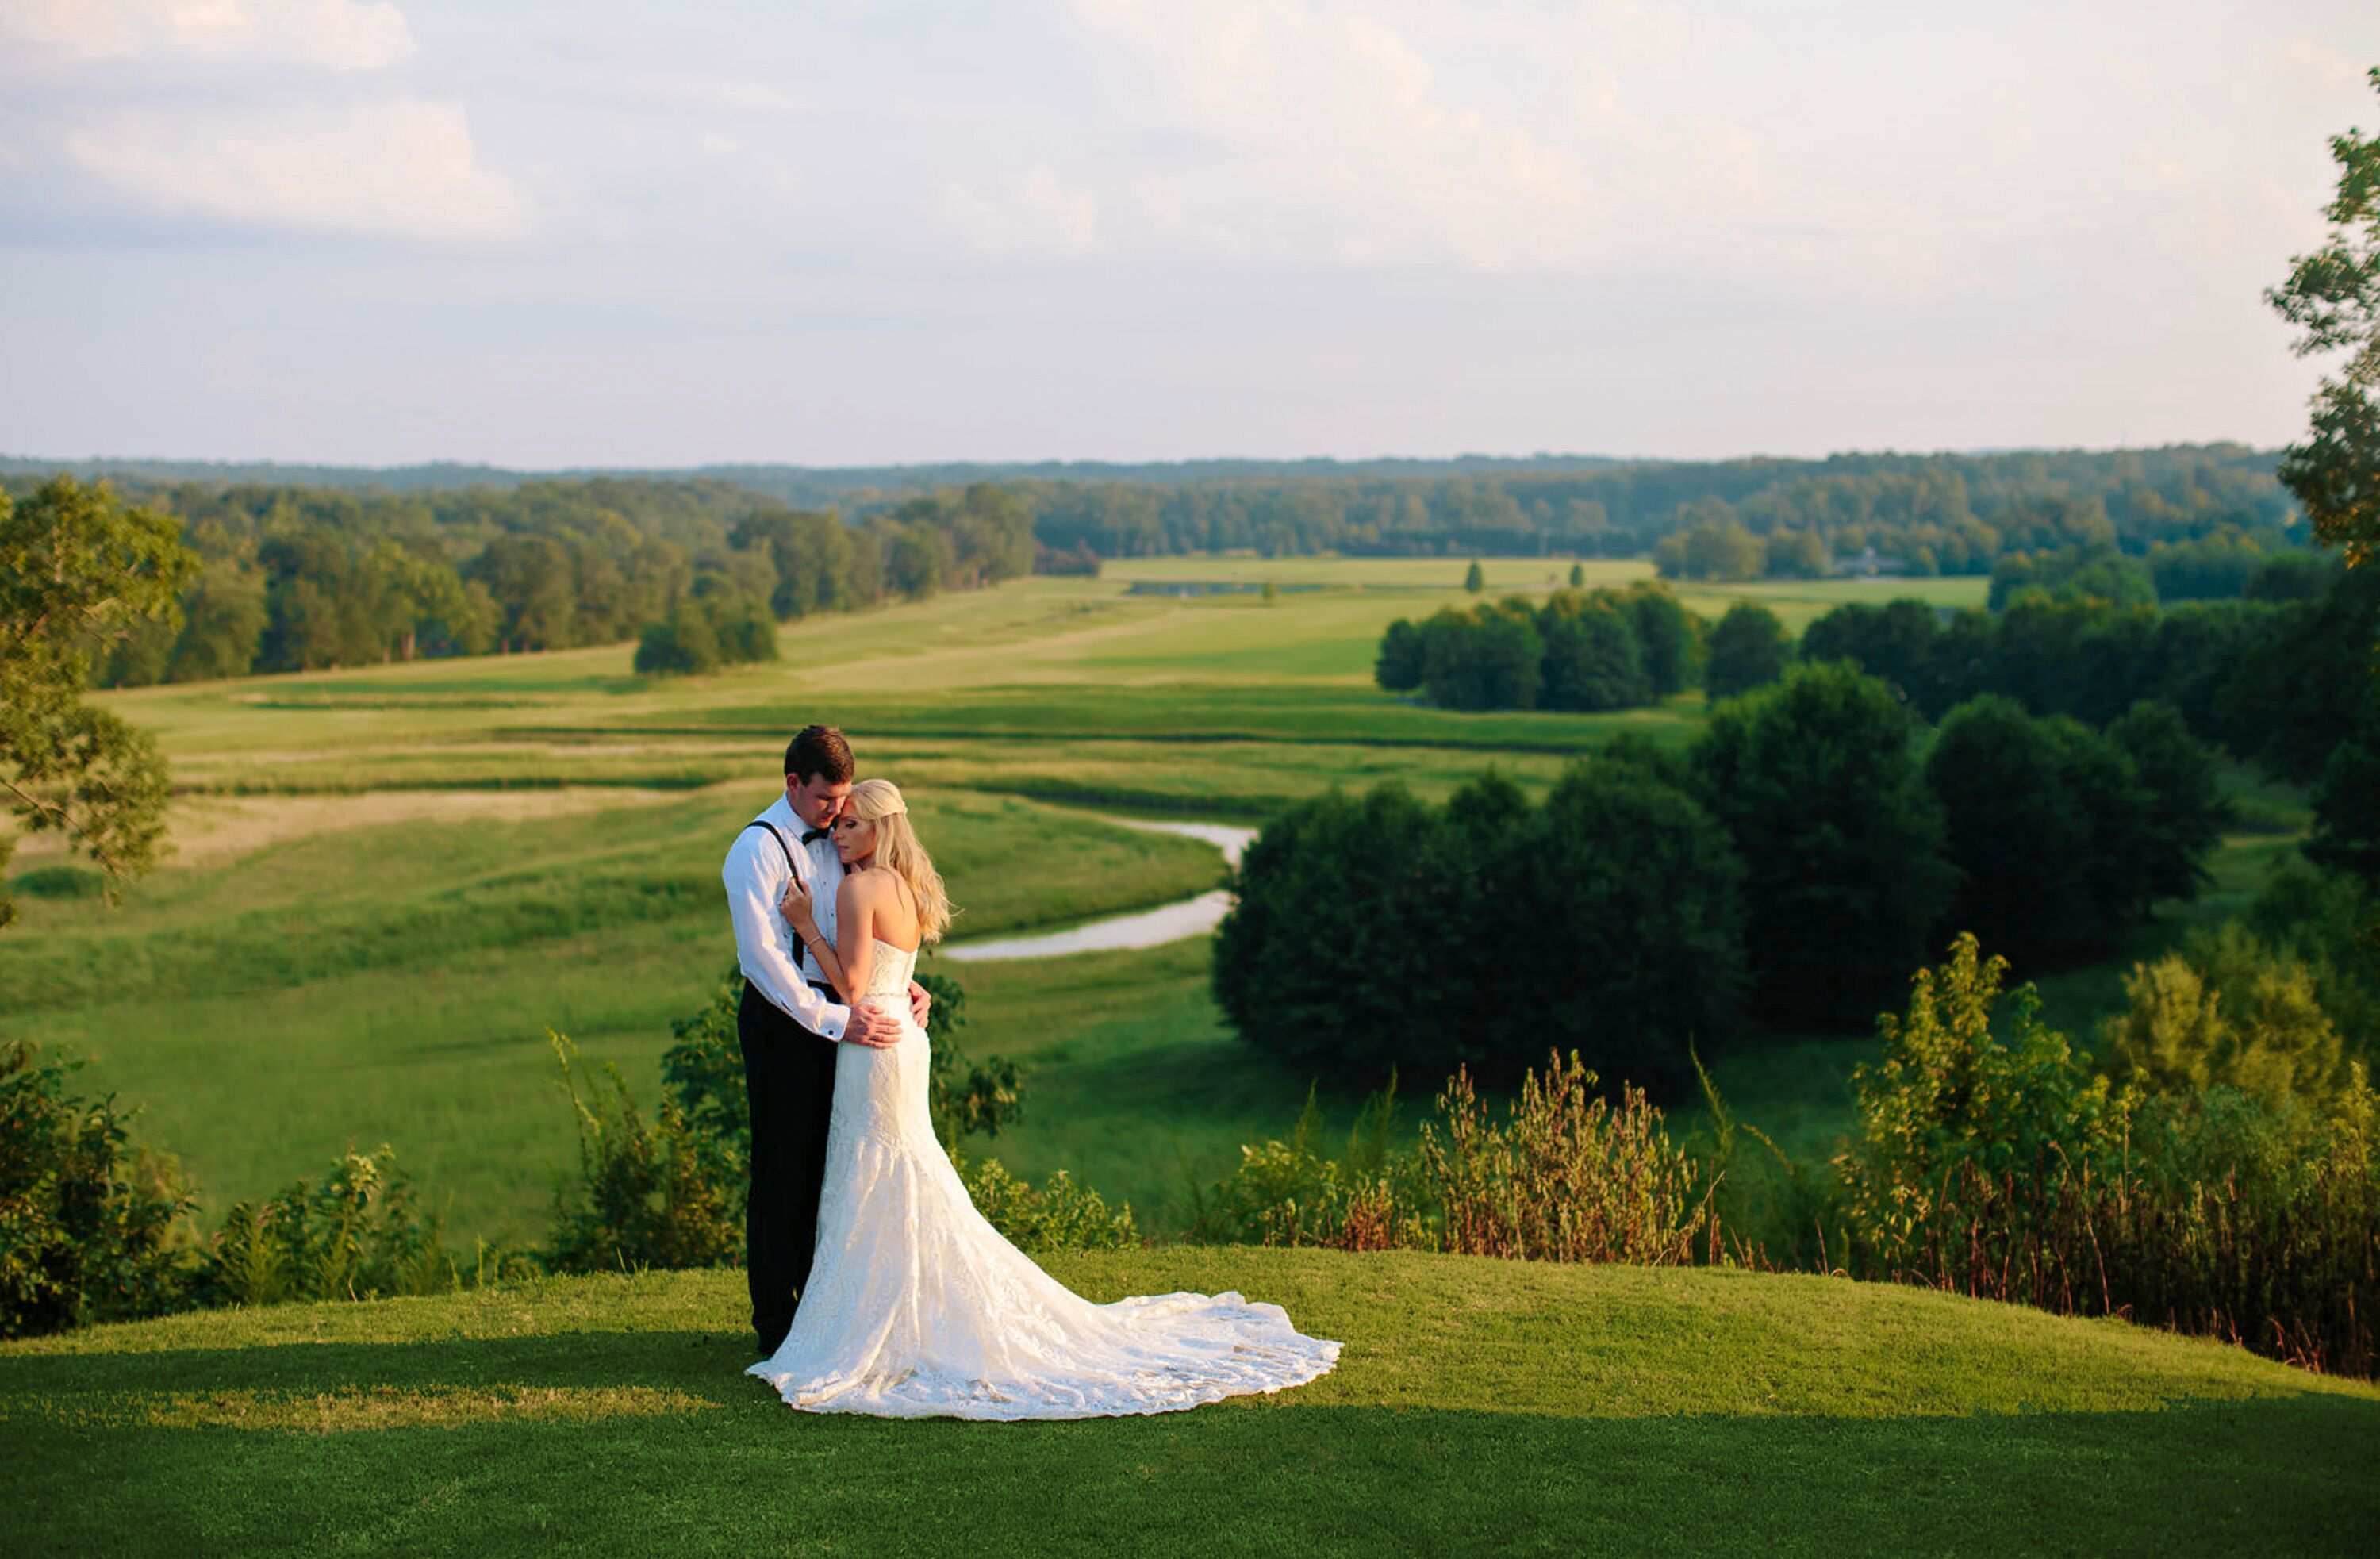 Wedding reception venues in atlanta ga the knot foxhall resort junglespirit Image collections